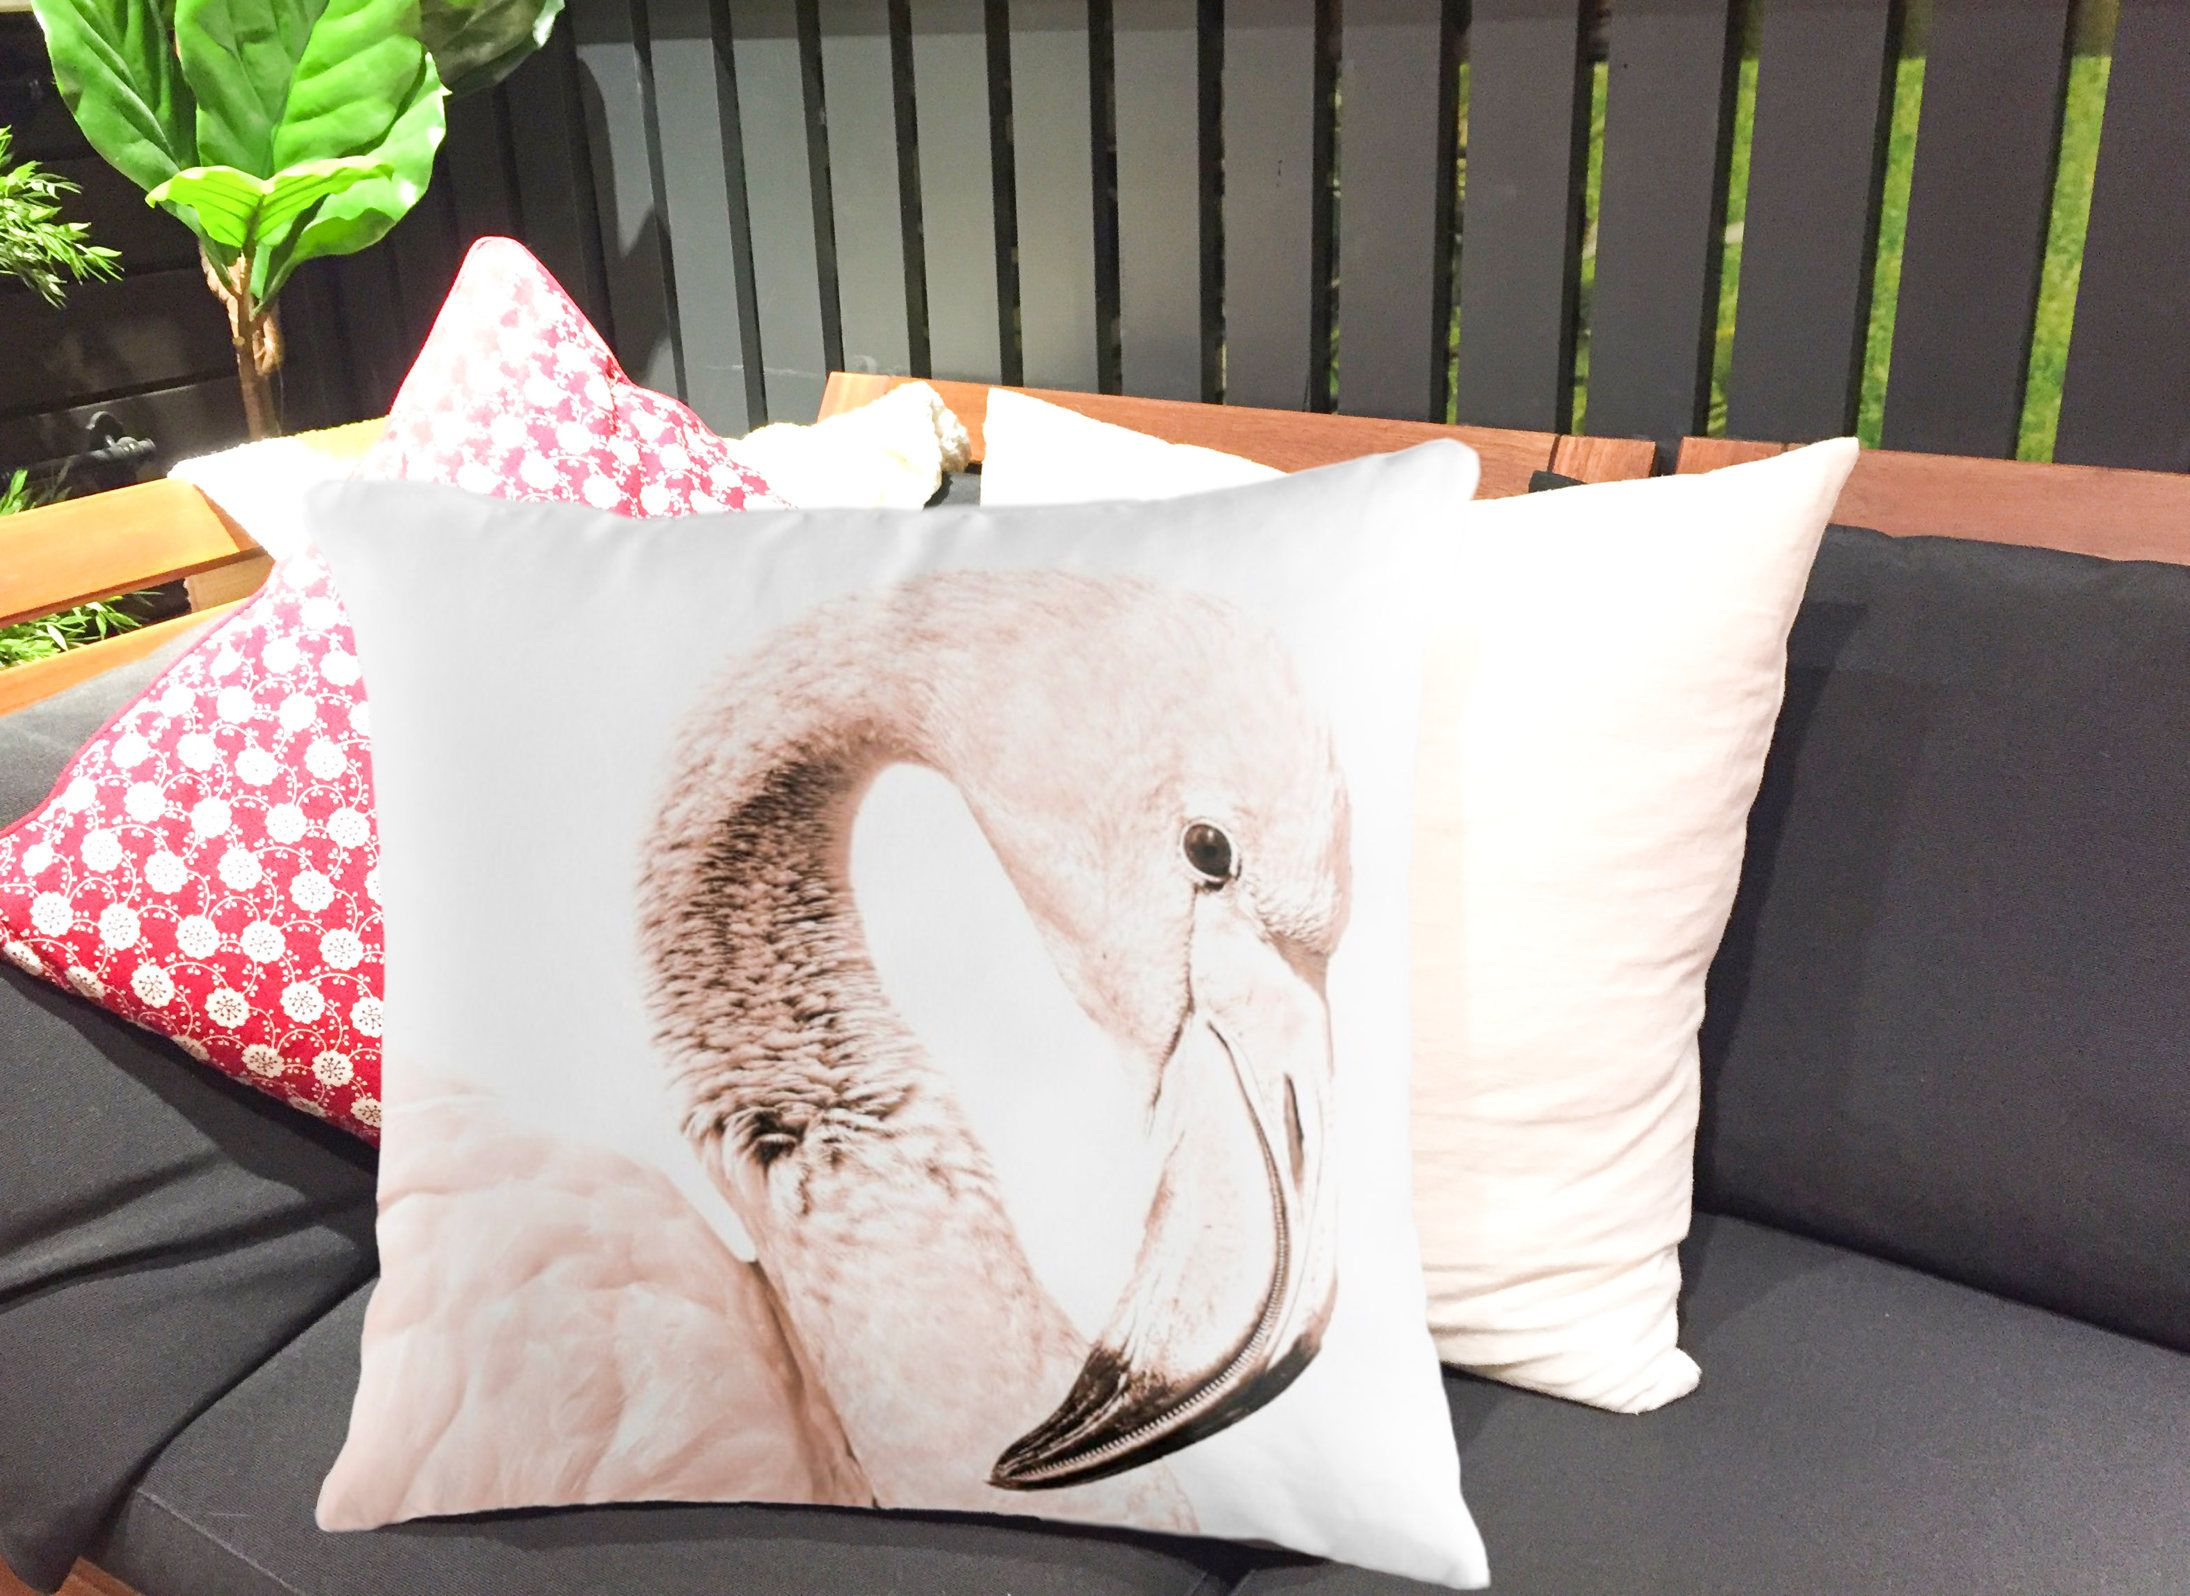 Flamingo cushion cover aud throw pillow cover cm x cm